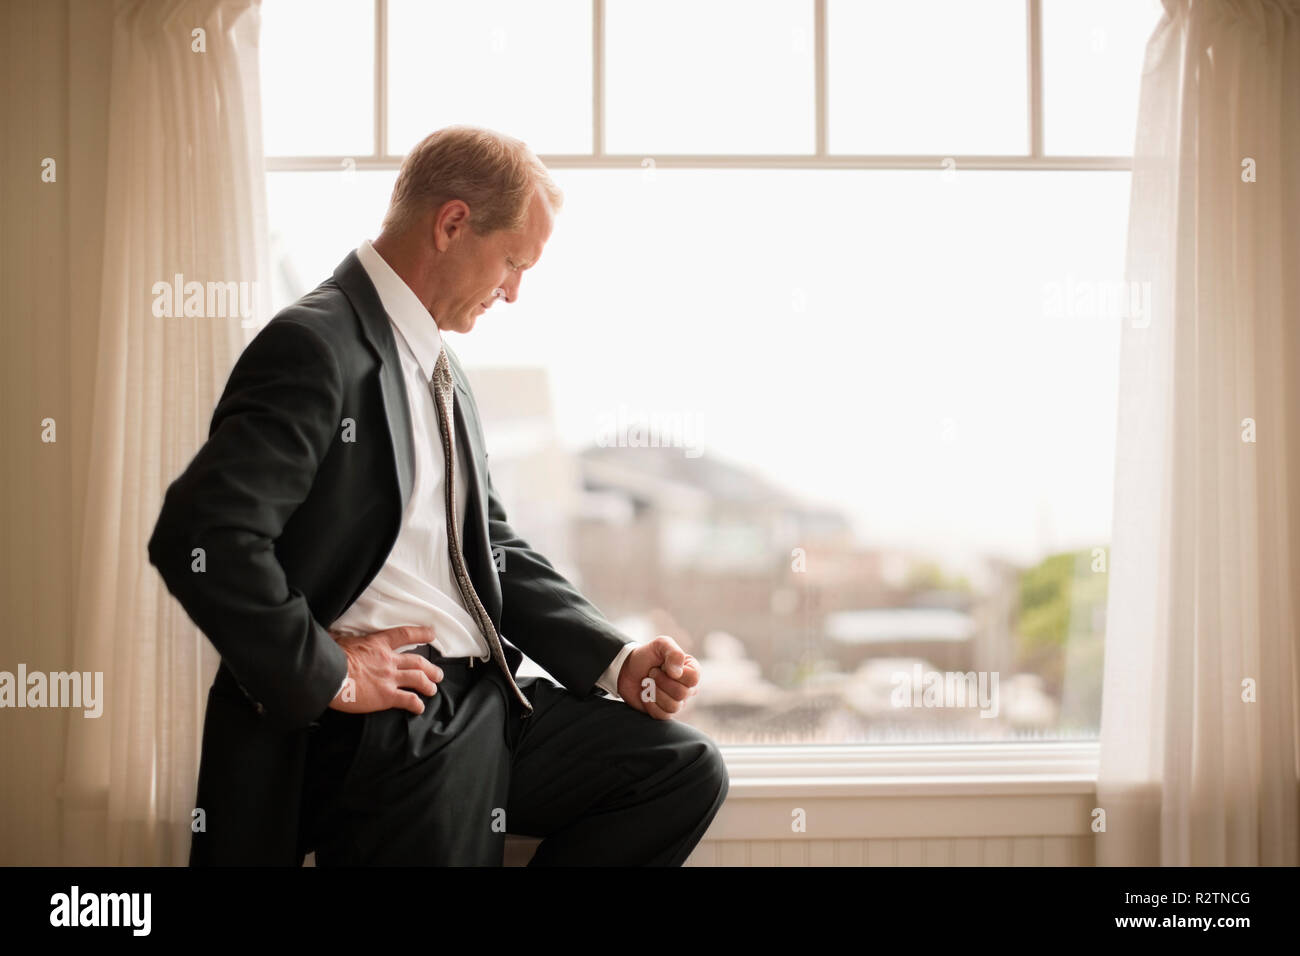 Businessman looking out window deep in thought Stock Photo